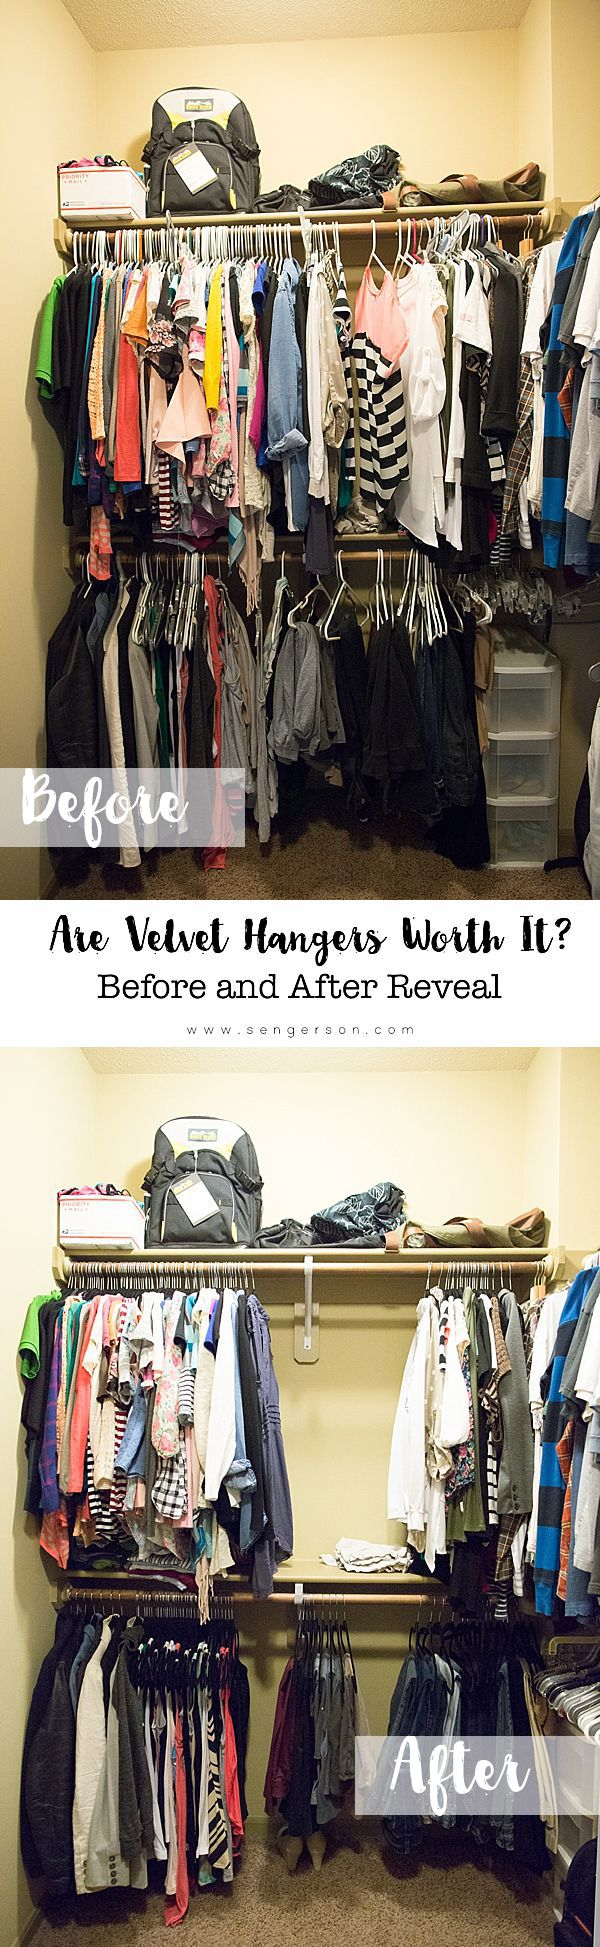 Awesome products to organize your closet for a great start to the day by actually seeing everything in your wardrobe. Awesome review of before and after using velvet hangers too!